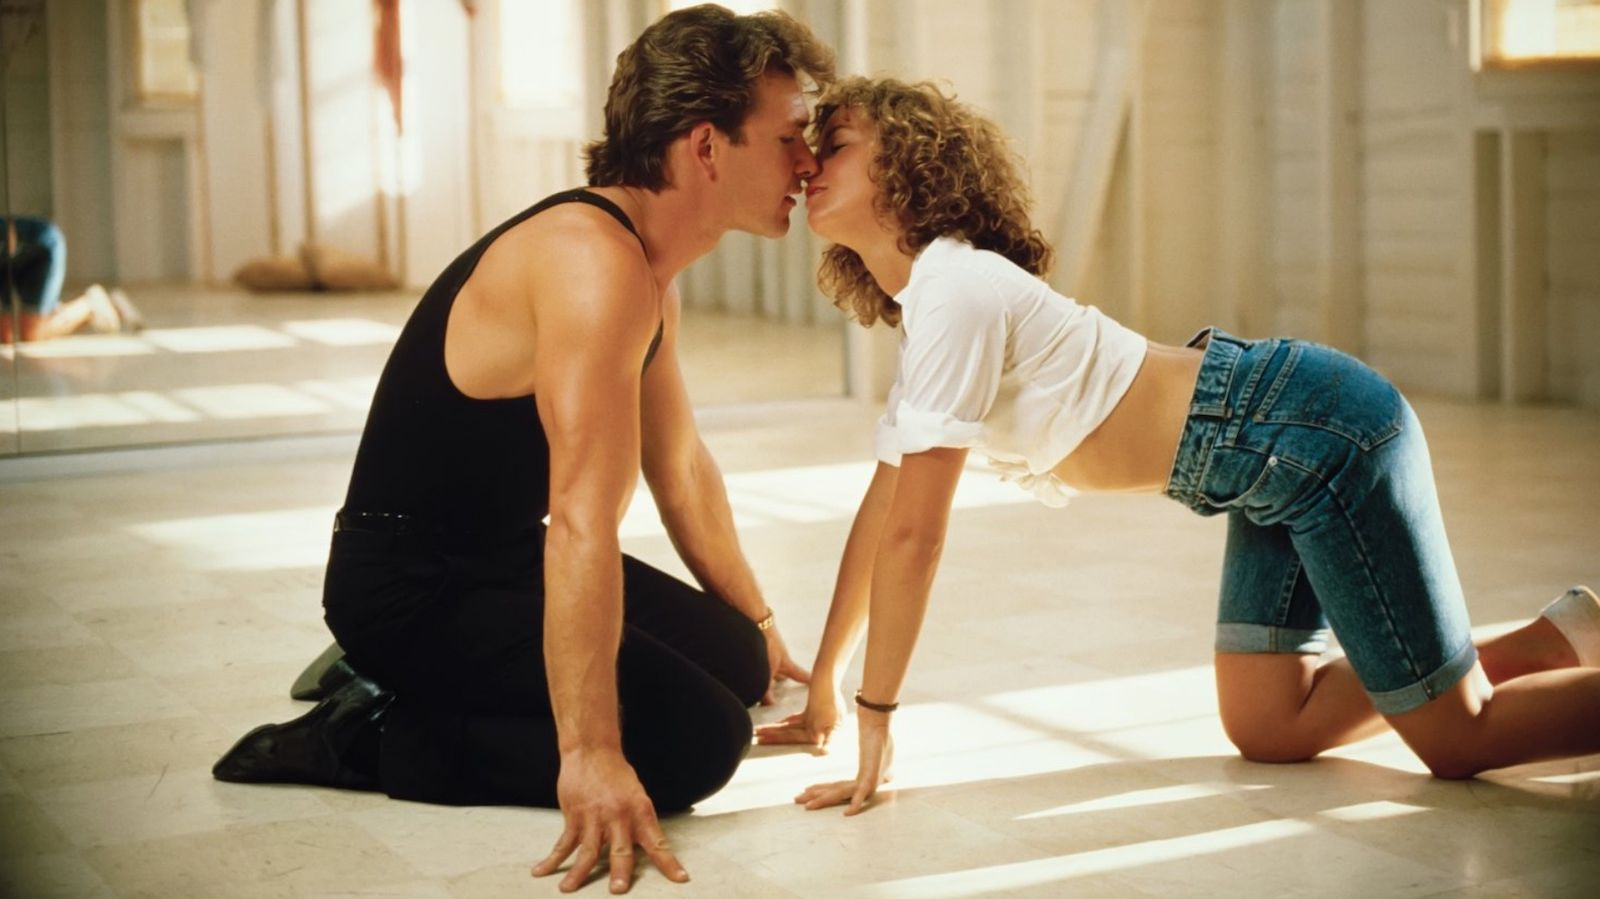 14 Not-So-Dirty Facts About 'Dirty Dancing' | Mental Floss